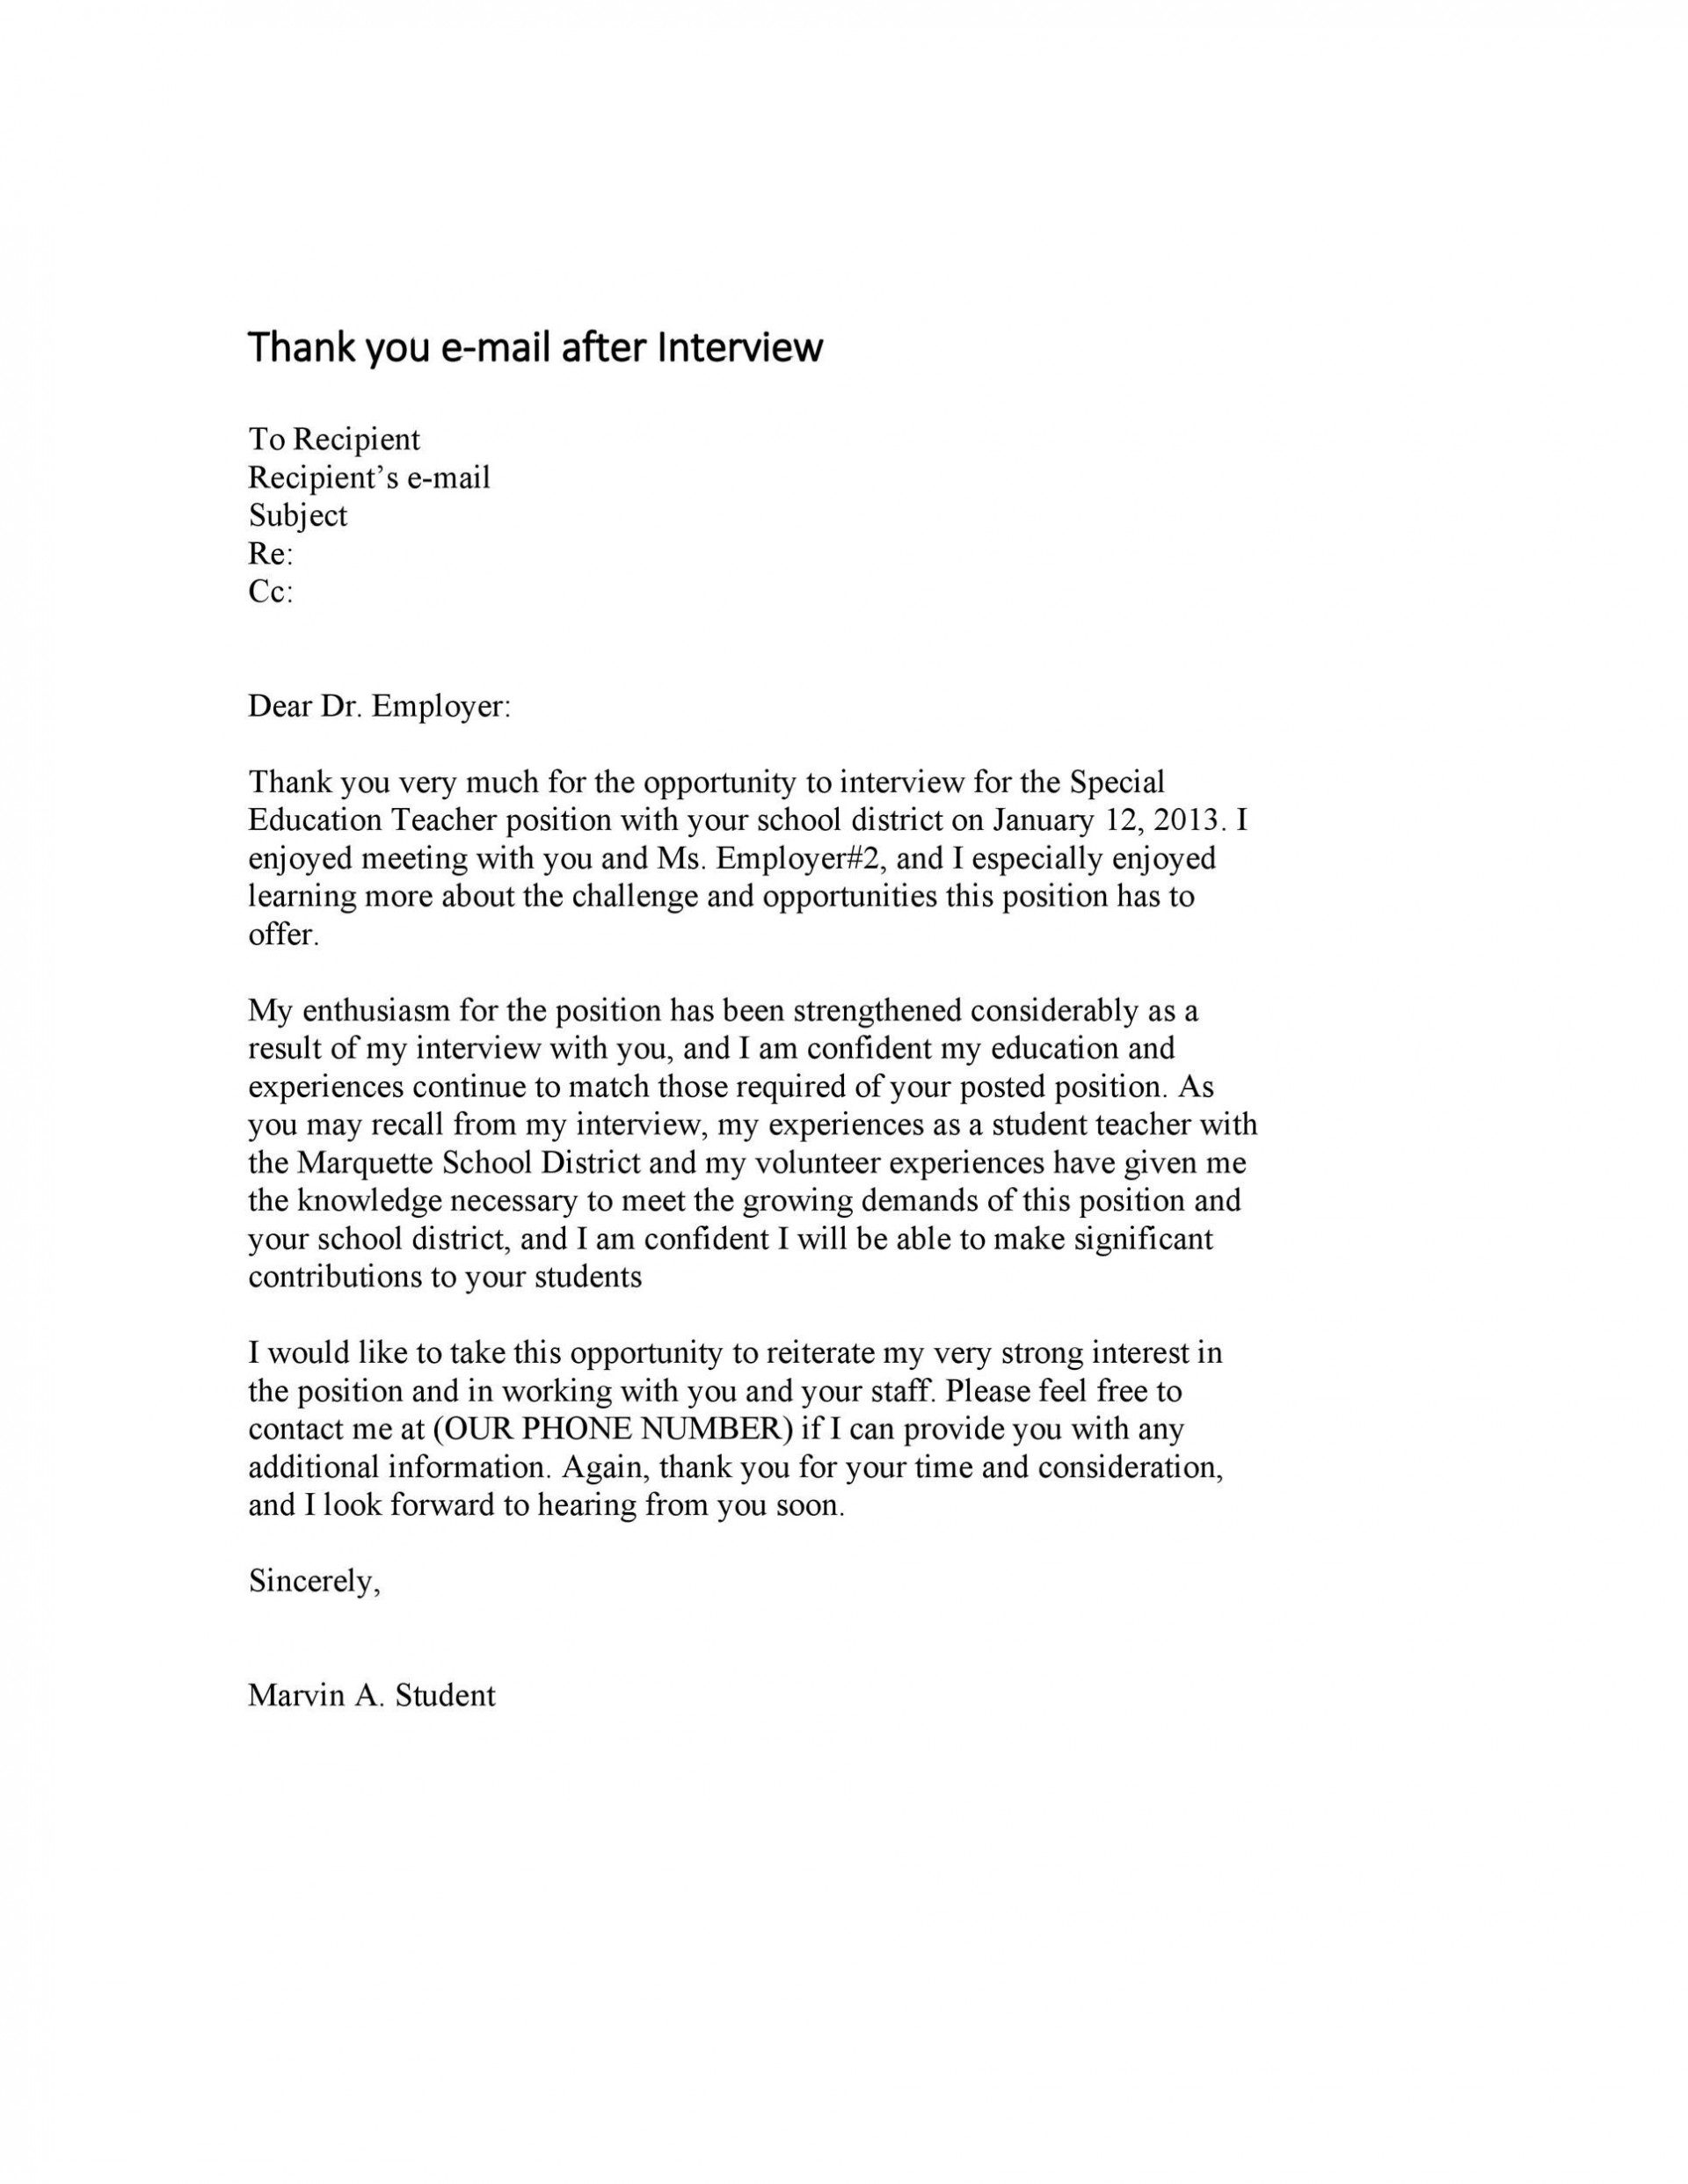 009 Incredible Thank You Note Template After Job Interview Inspiration  Card For Letter Sample1920